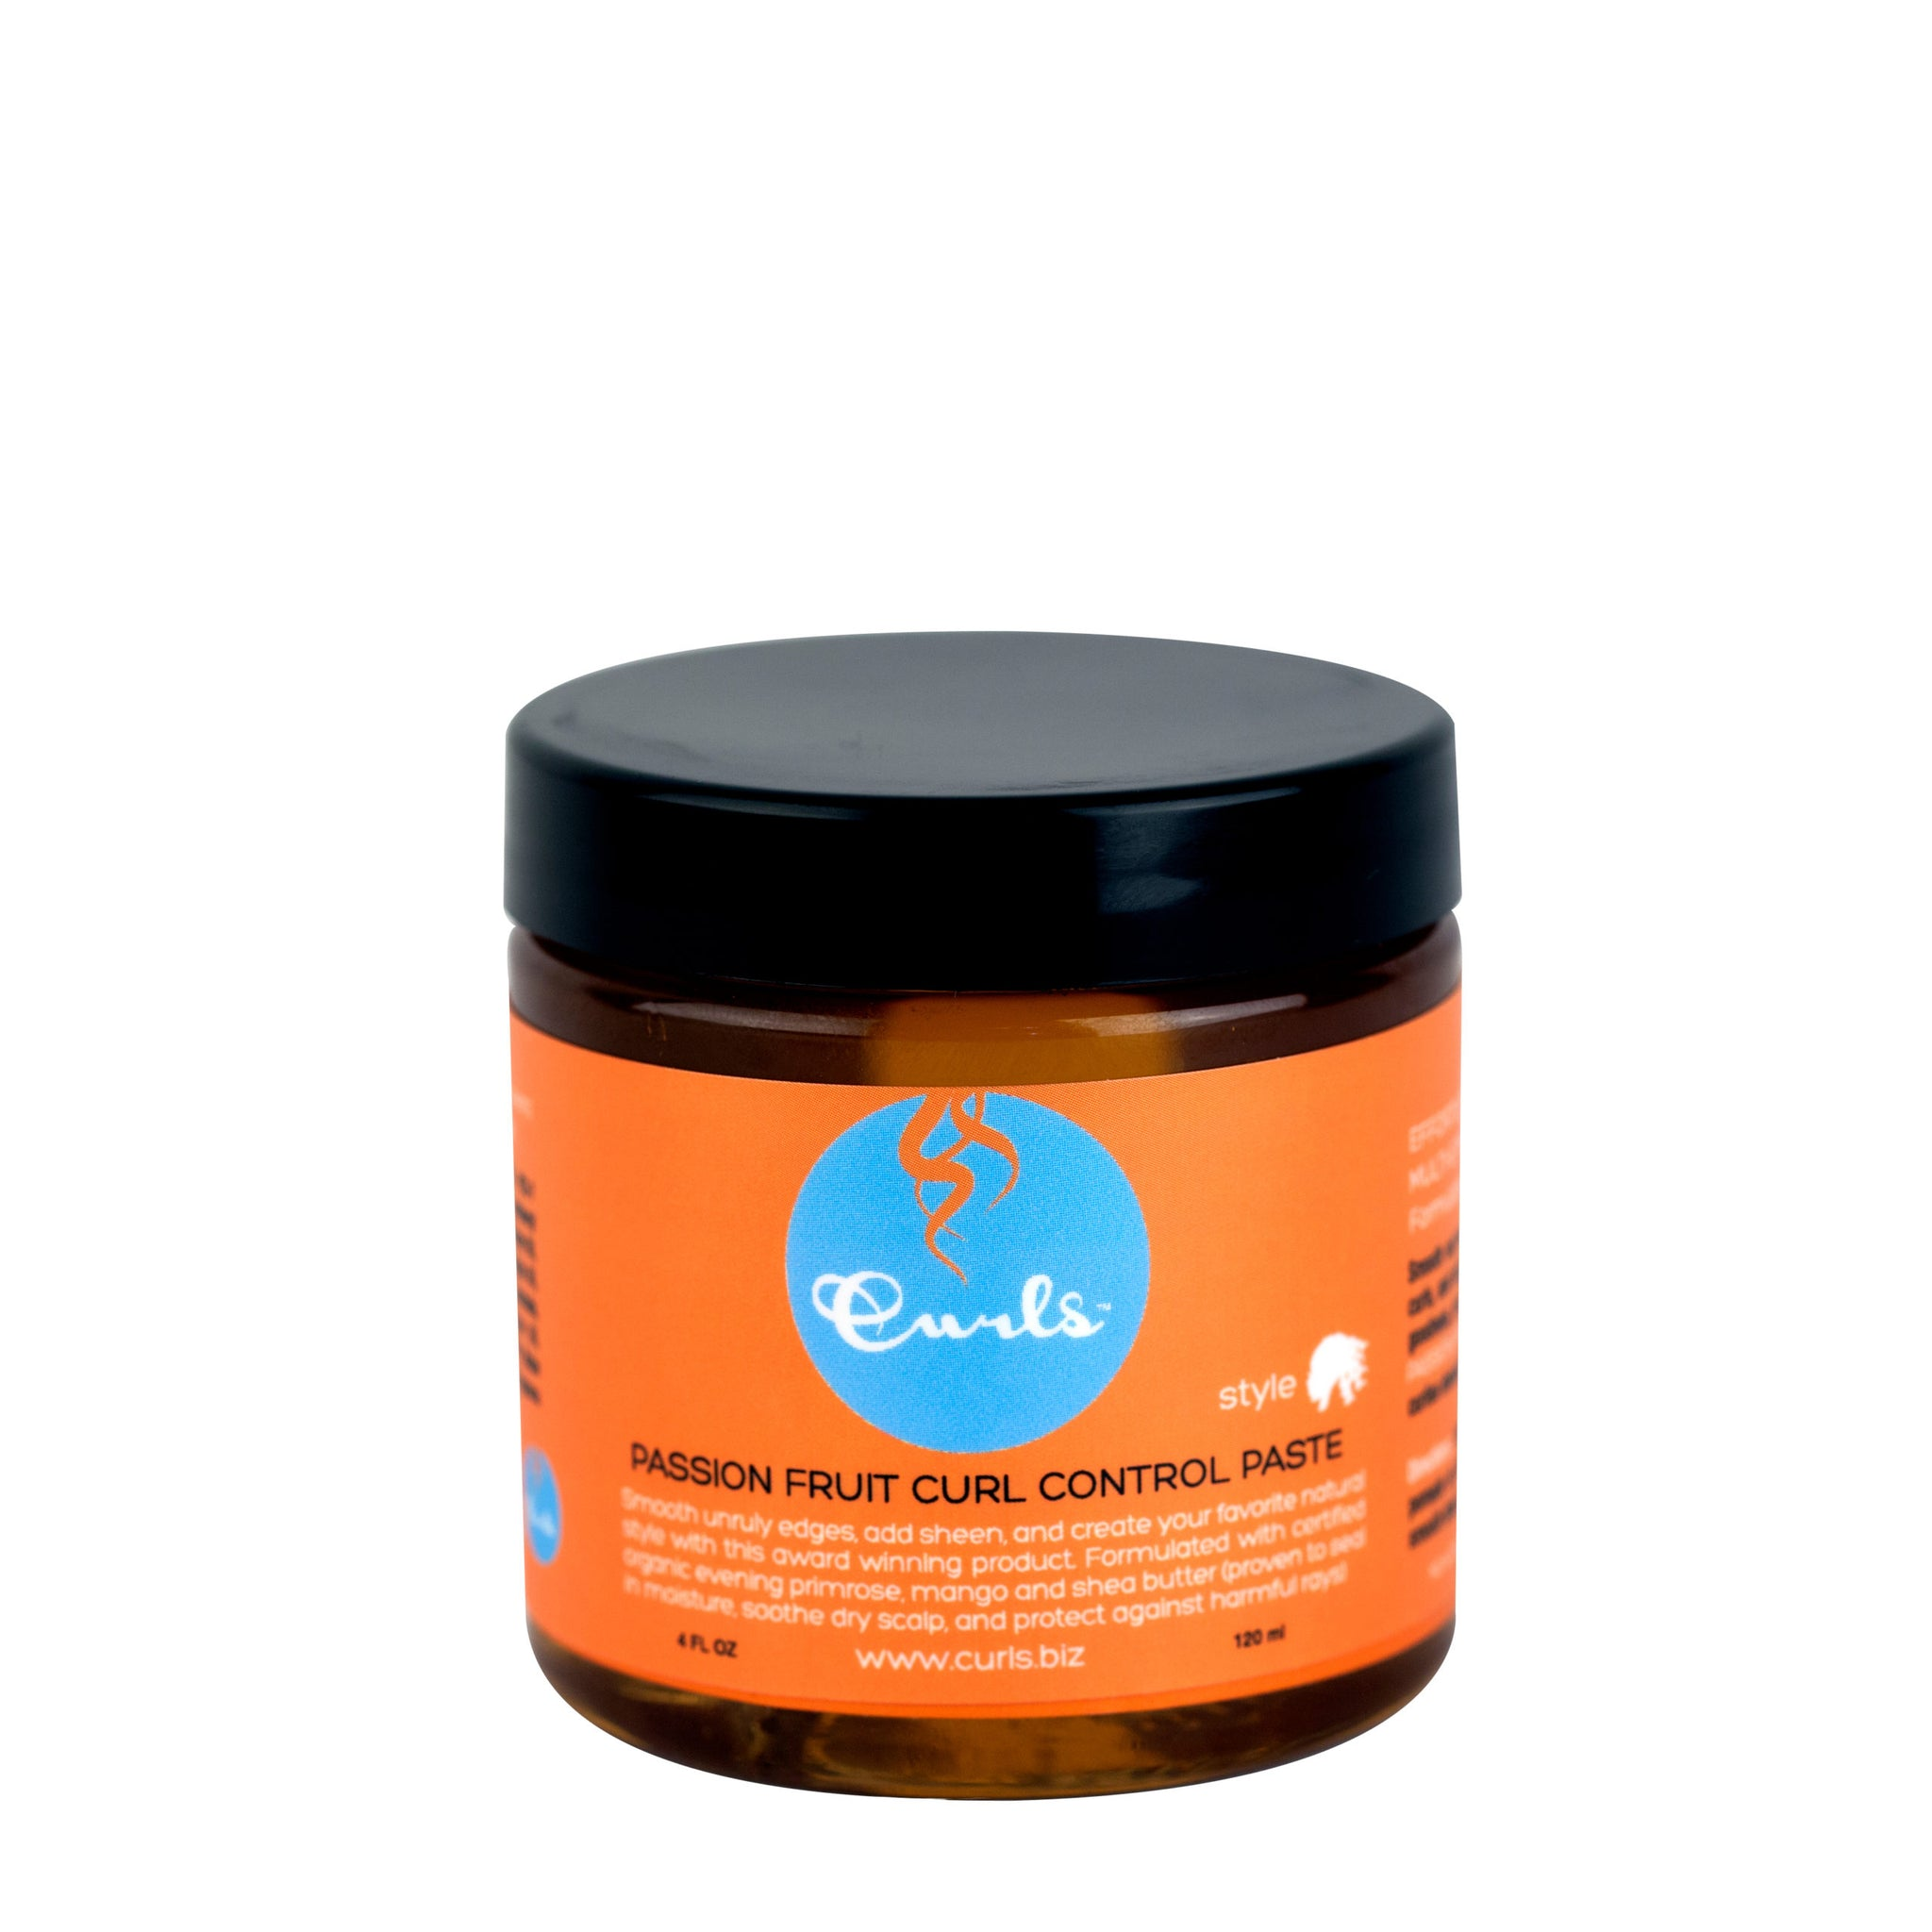 Curls Passion Fruit Curl Control Paste